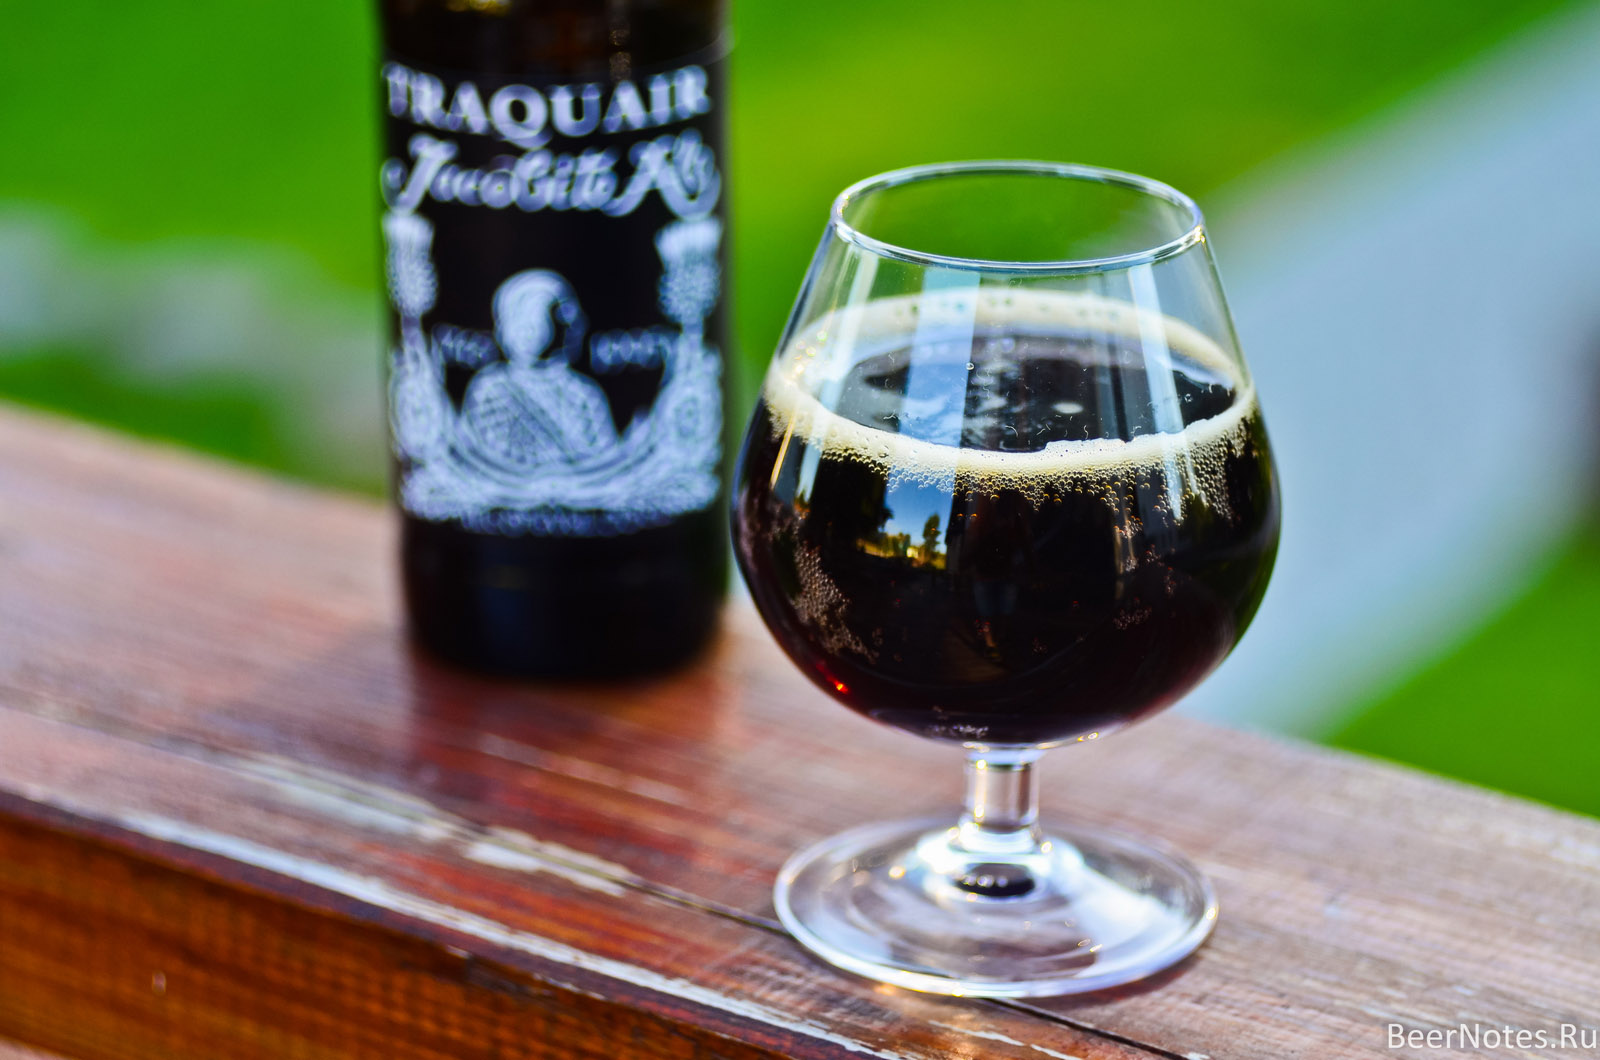 Traquair Jacobite Ale4